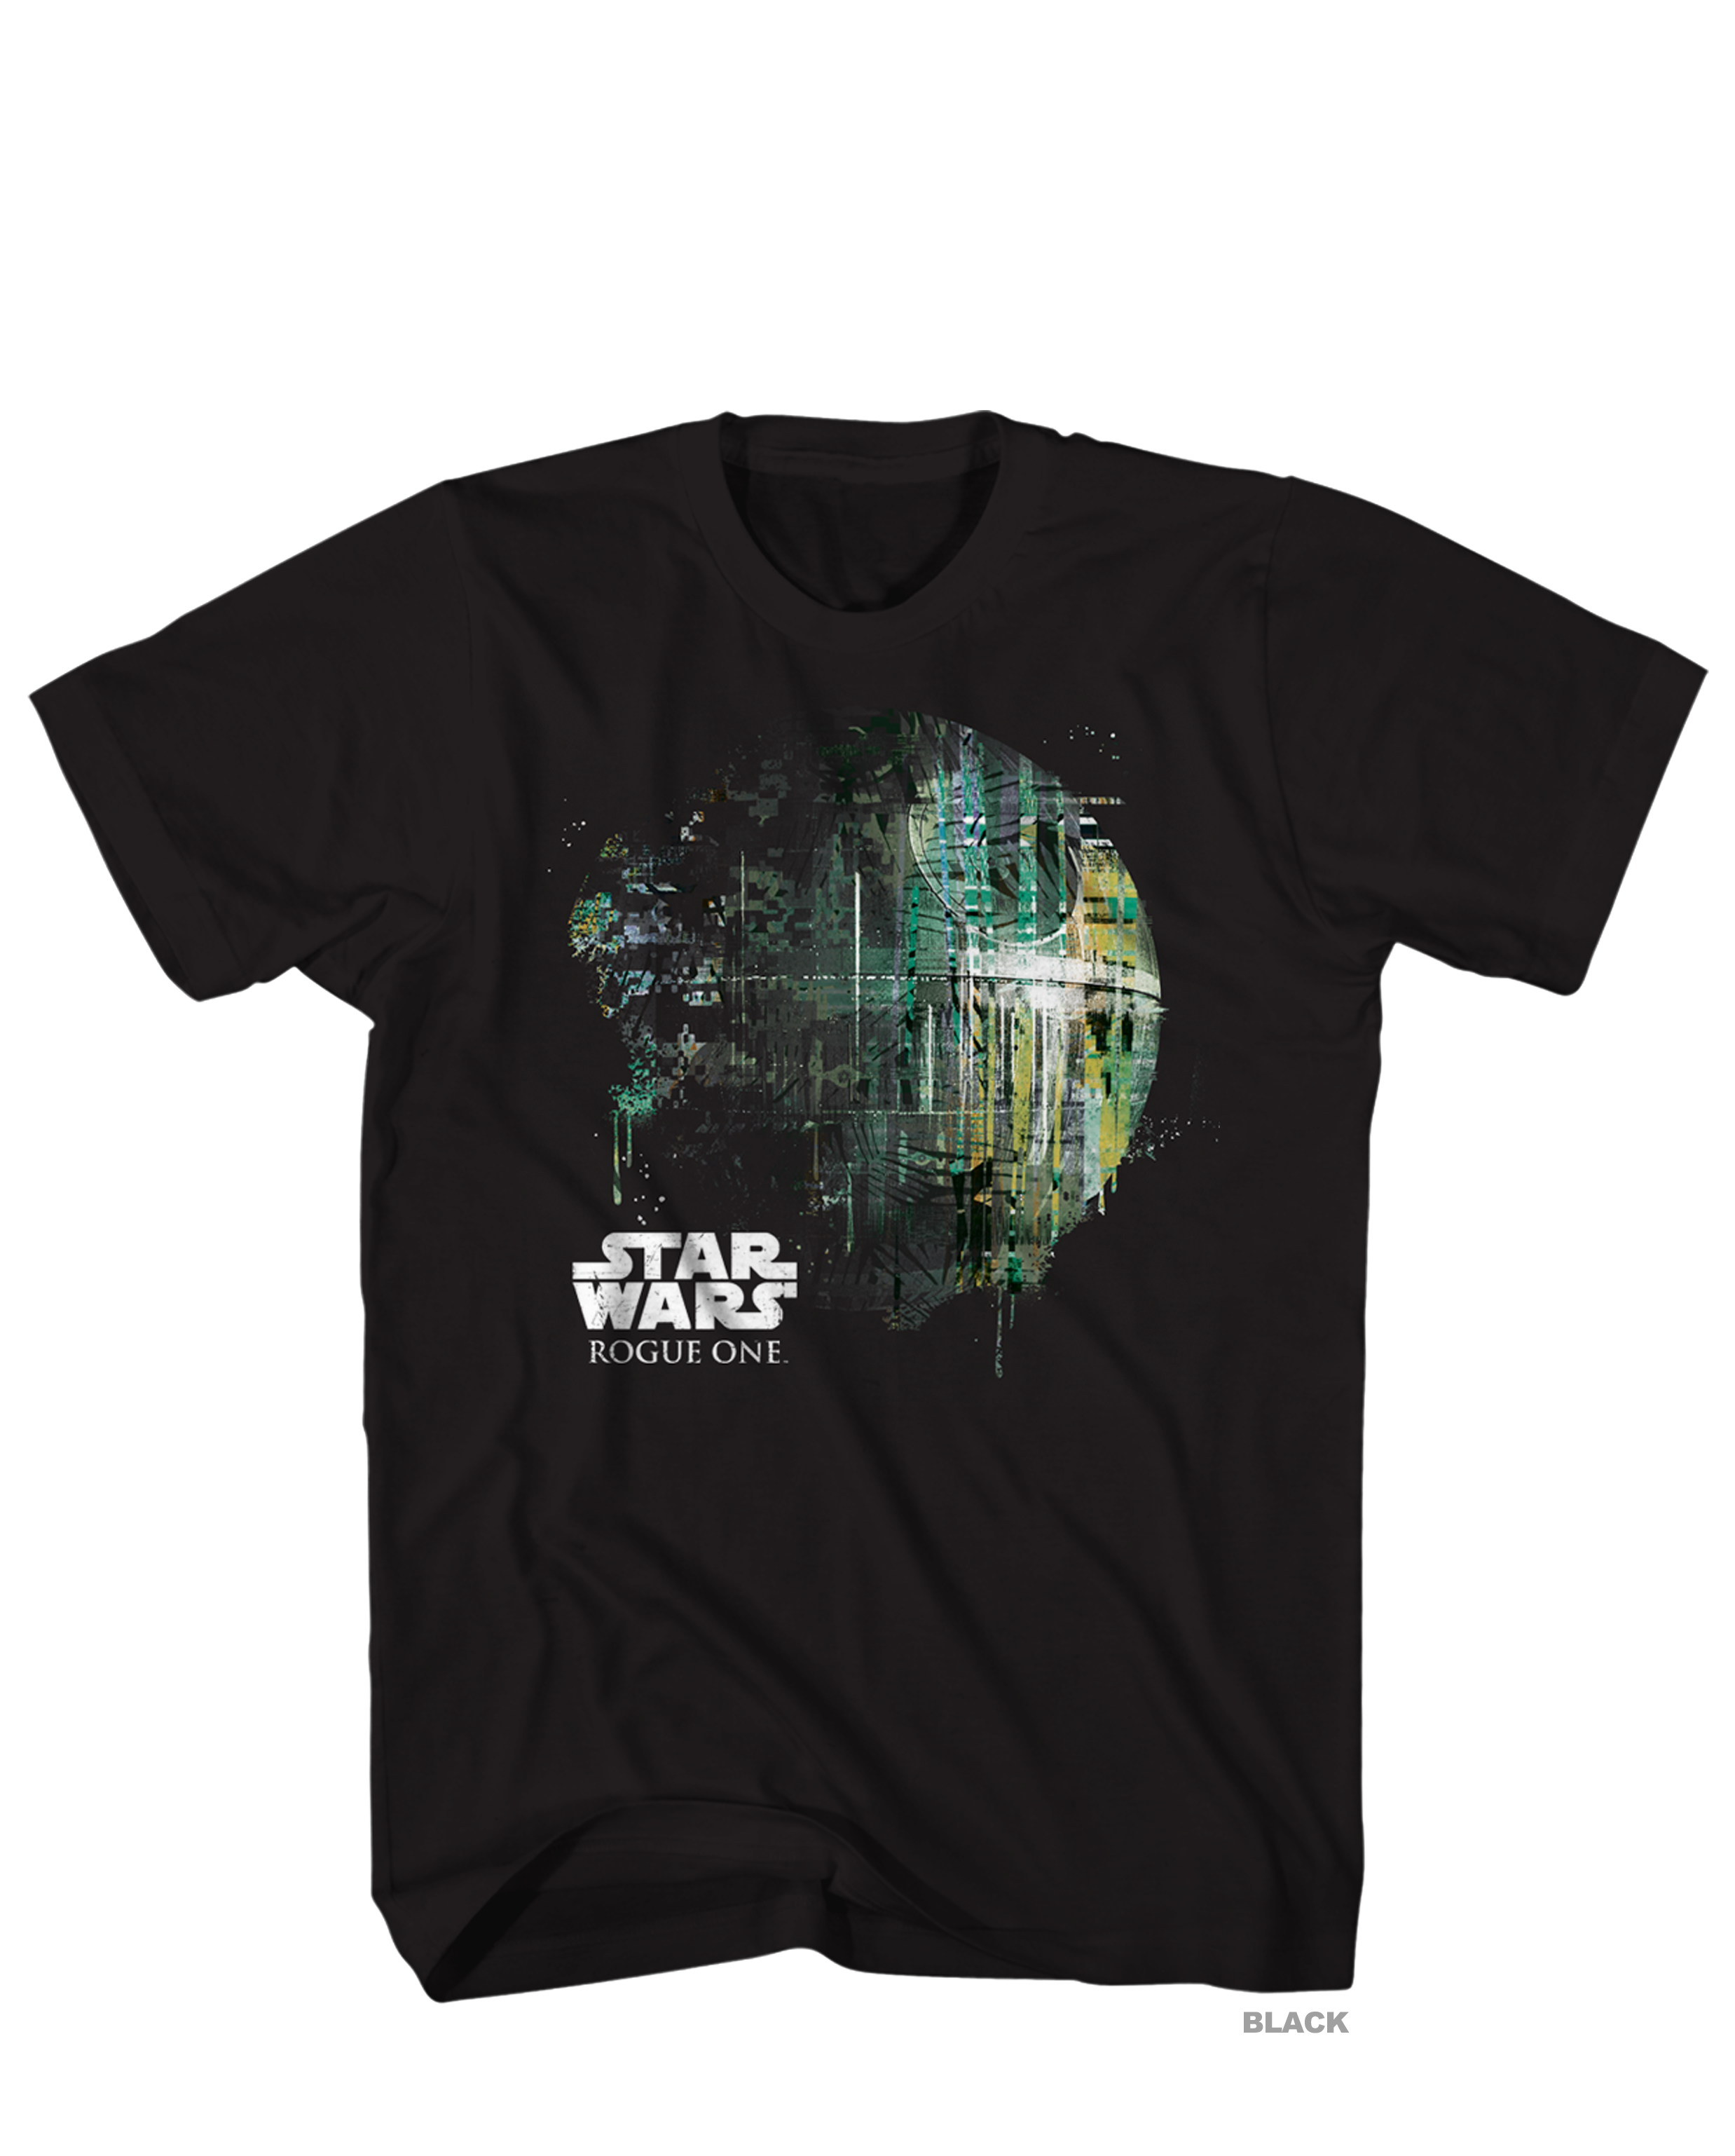 Star Wars Rogue One Dripping Death Star Mens Heathered Black Shirt, X-Large